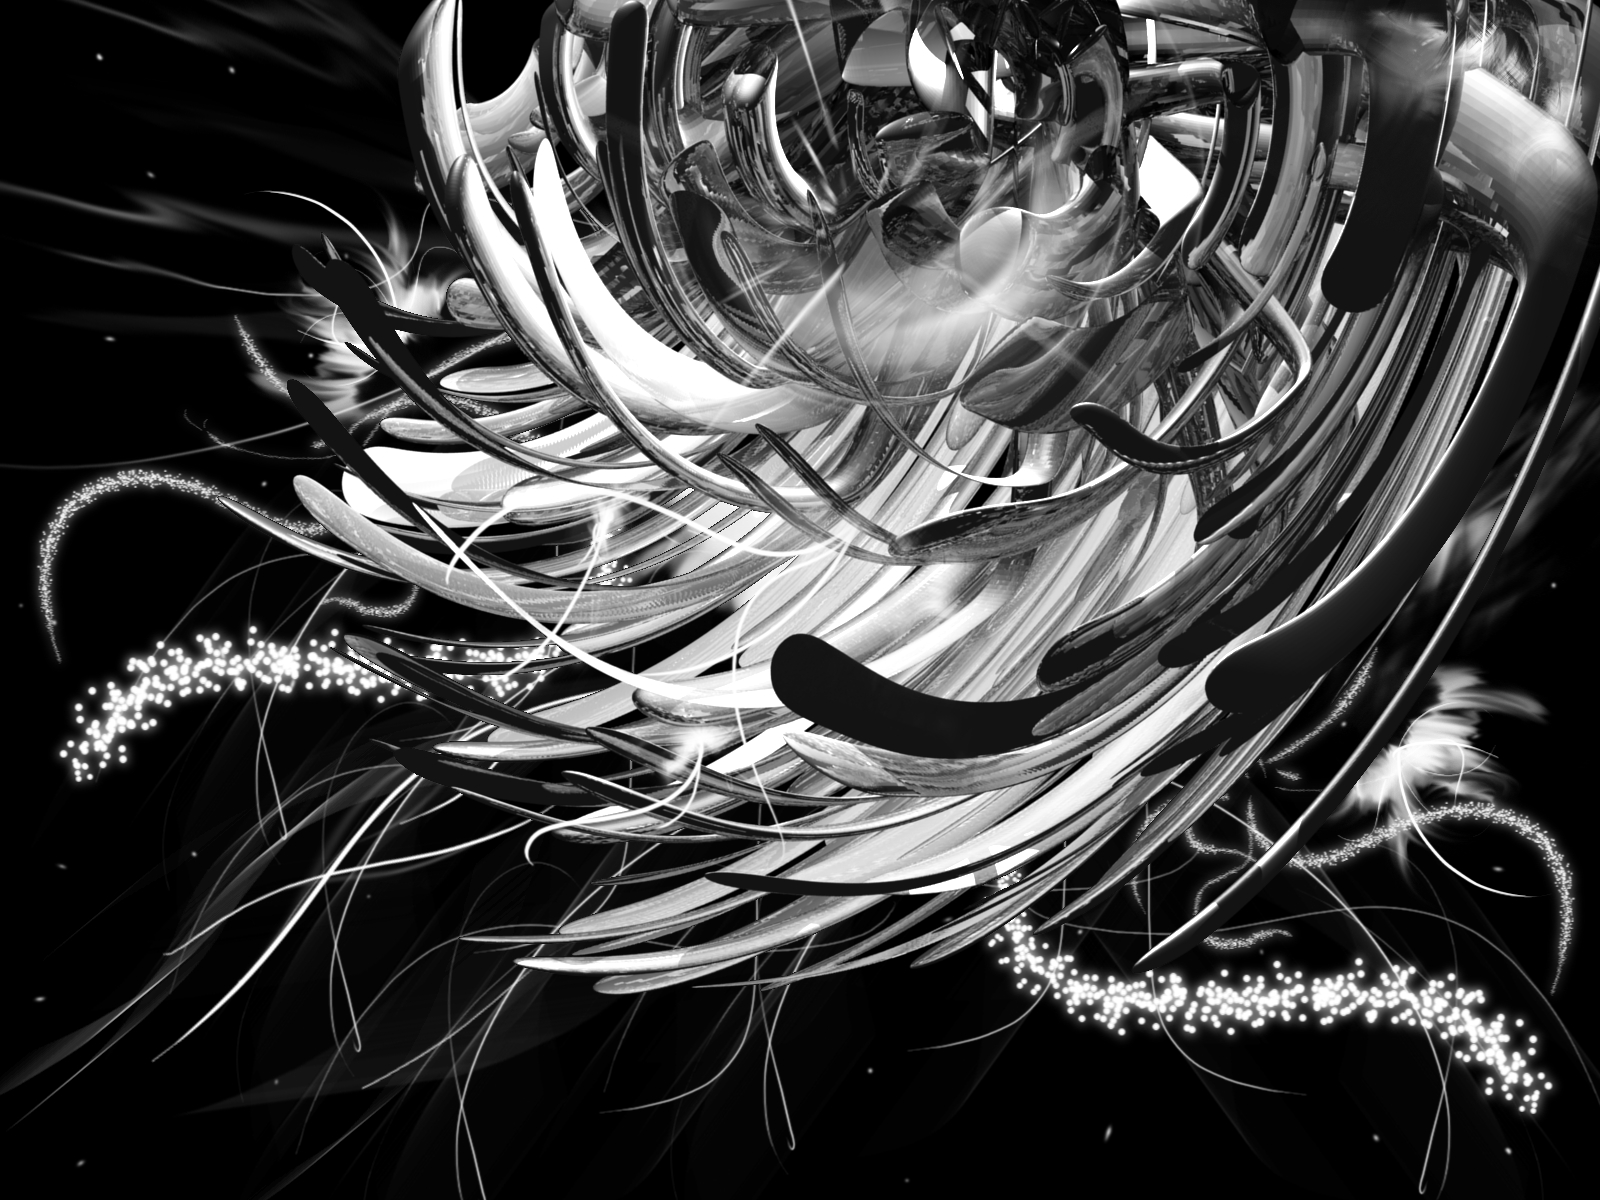 Silver 3d wallpapers for Black and silver 3d wallpaper